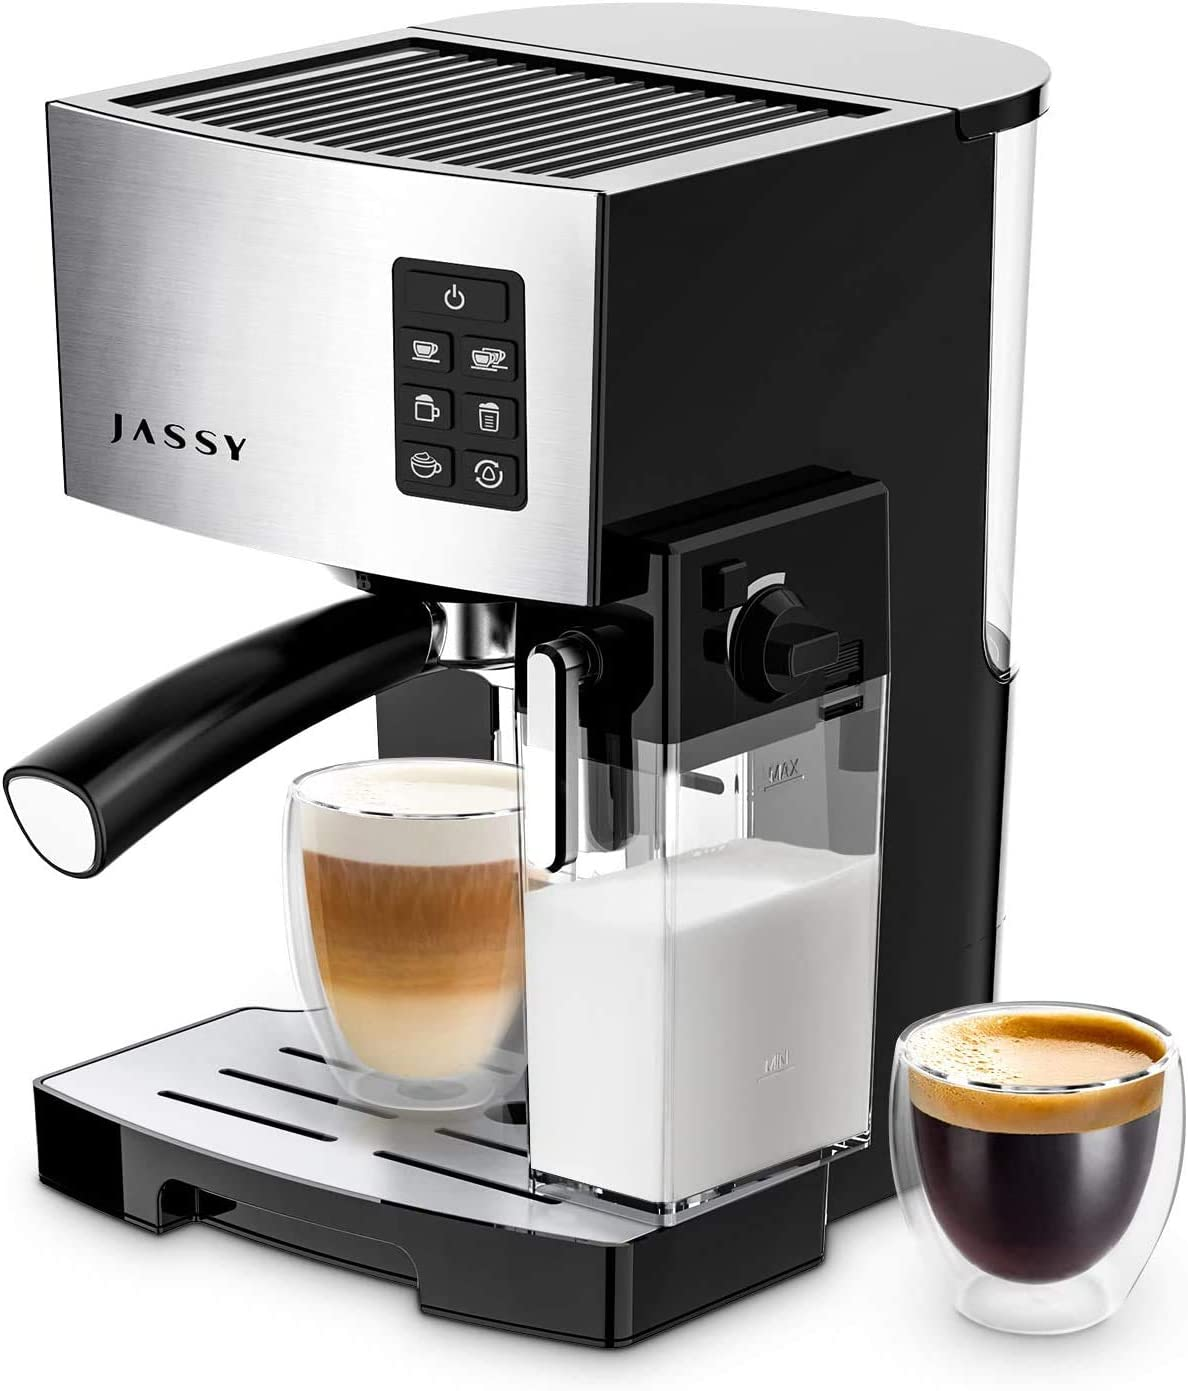 Espresso Coffee Machine 19 Bar Cappuccino Maker for Home Barista Brewing,High Pressure Pump & Powerful Steamer,Adjustable Cup Shot Function,1250W